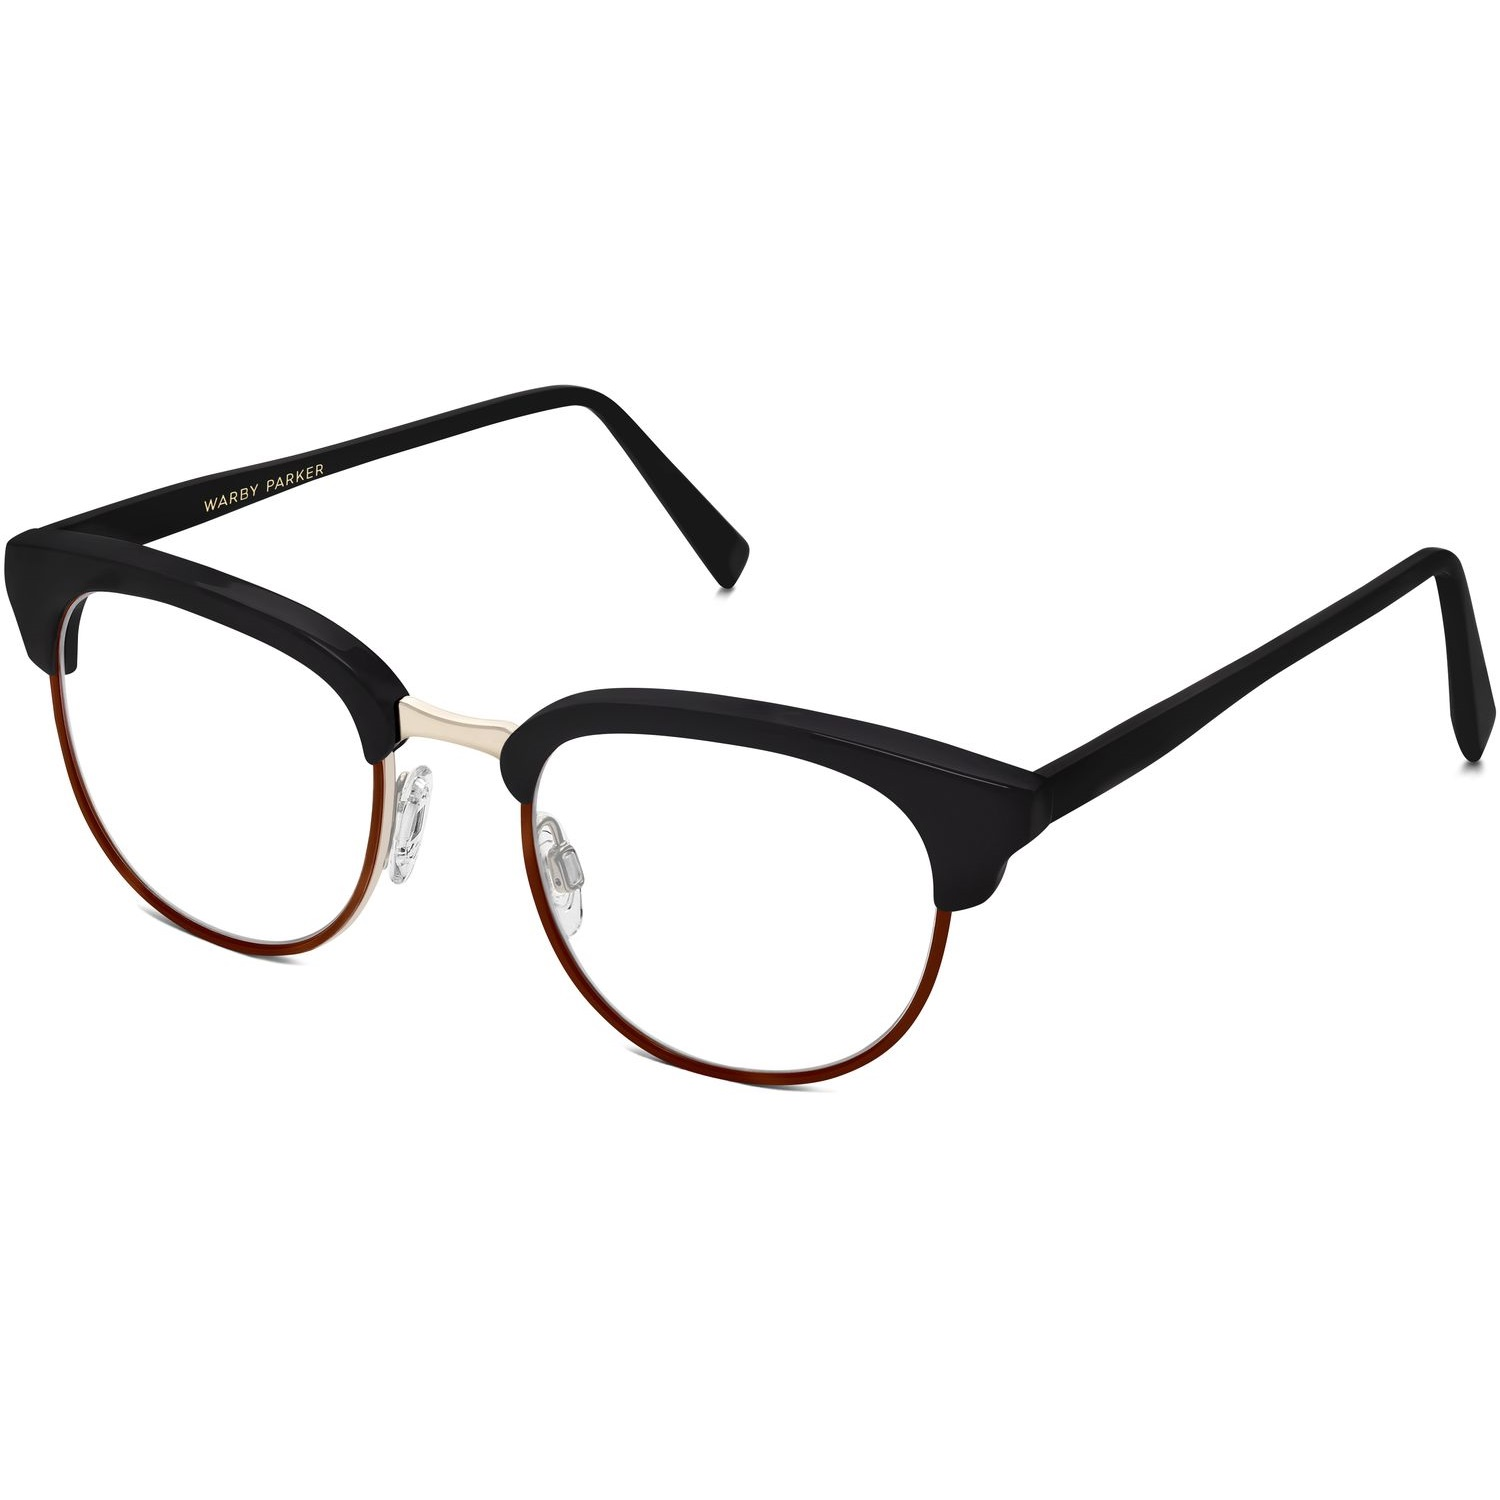 a1d7626fbed0 Webster Eyeglasses   Sunglasses — Eyewear Blogger